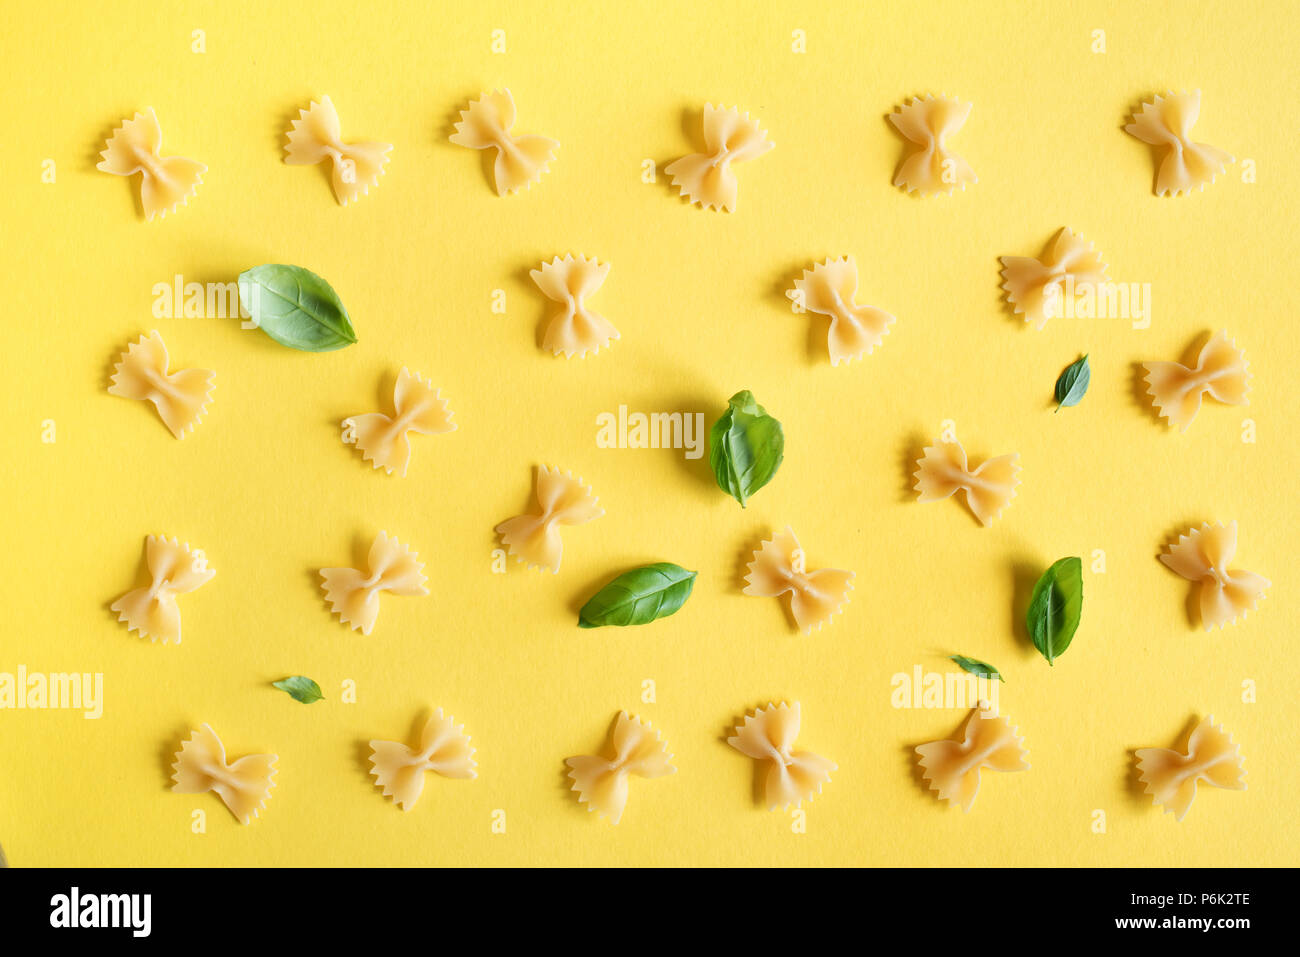 Farfalle Pasta on yellow background, top view, flat lay. Pattern uncooked farfalle pasta with basil leaves. - Stock Image